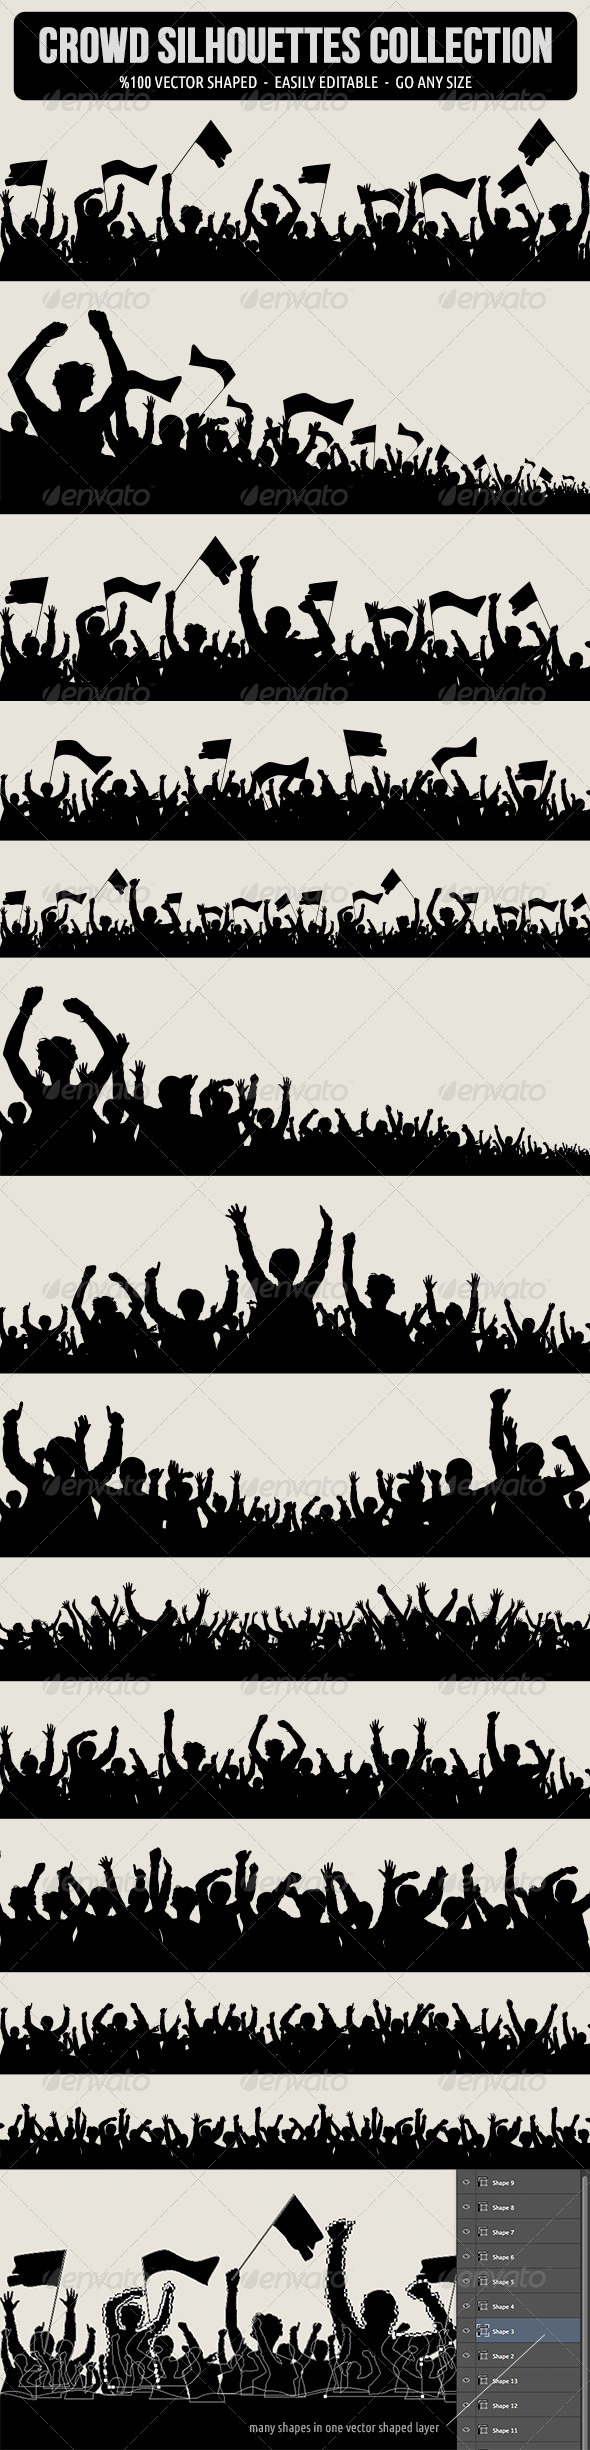 GraphicRiver Crowd Silhouettes 5420472